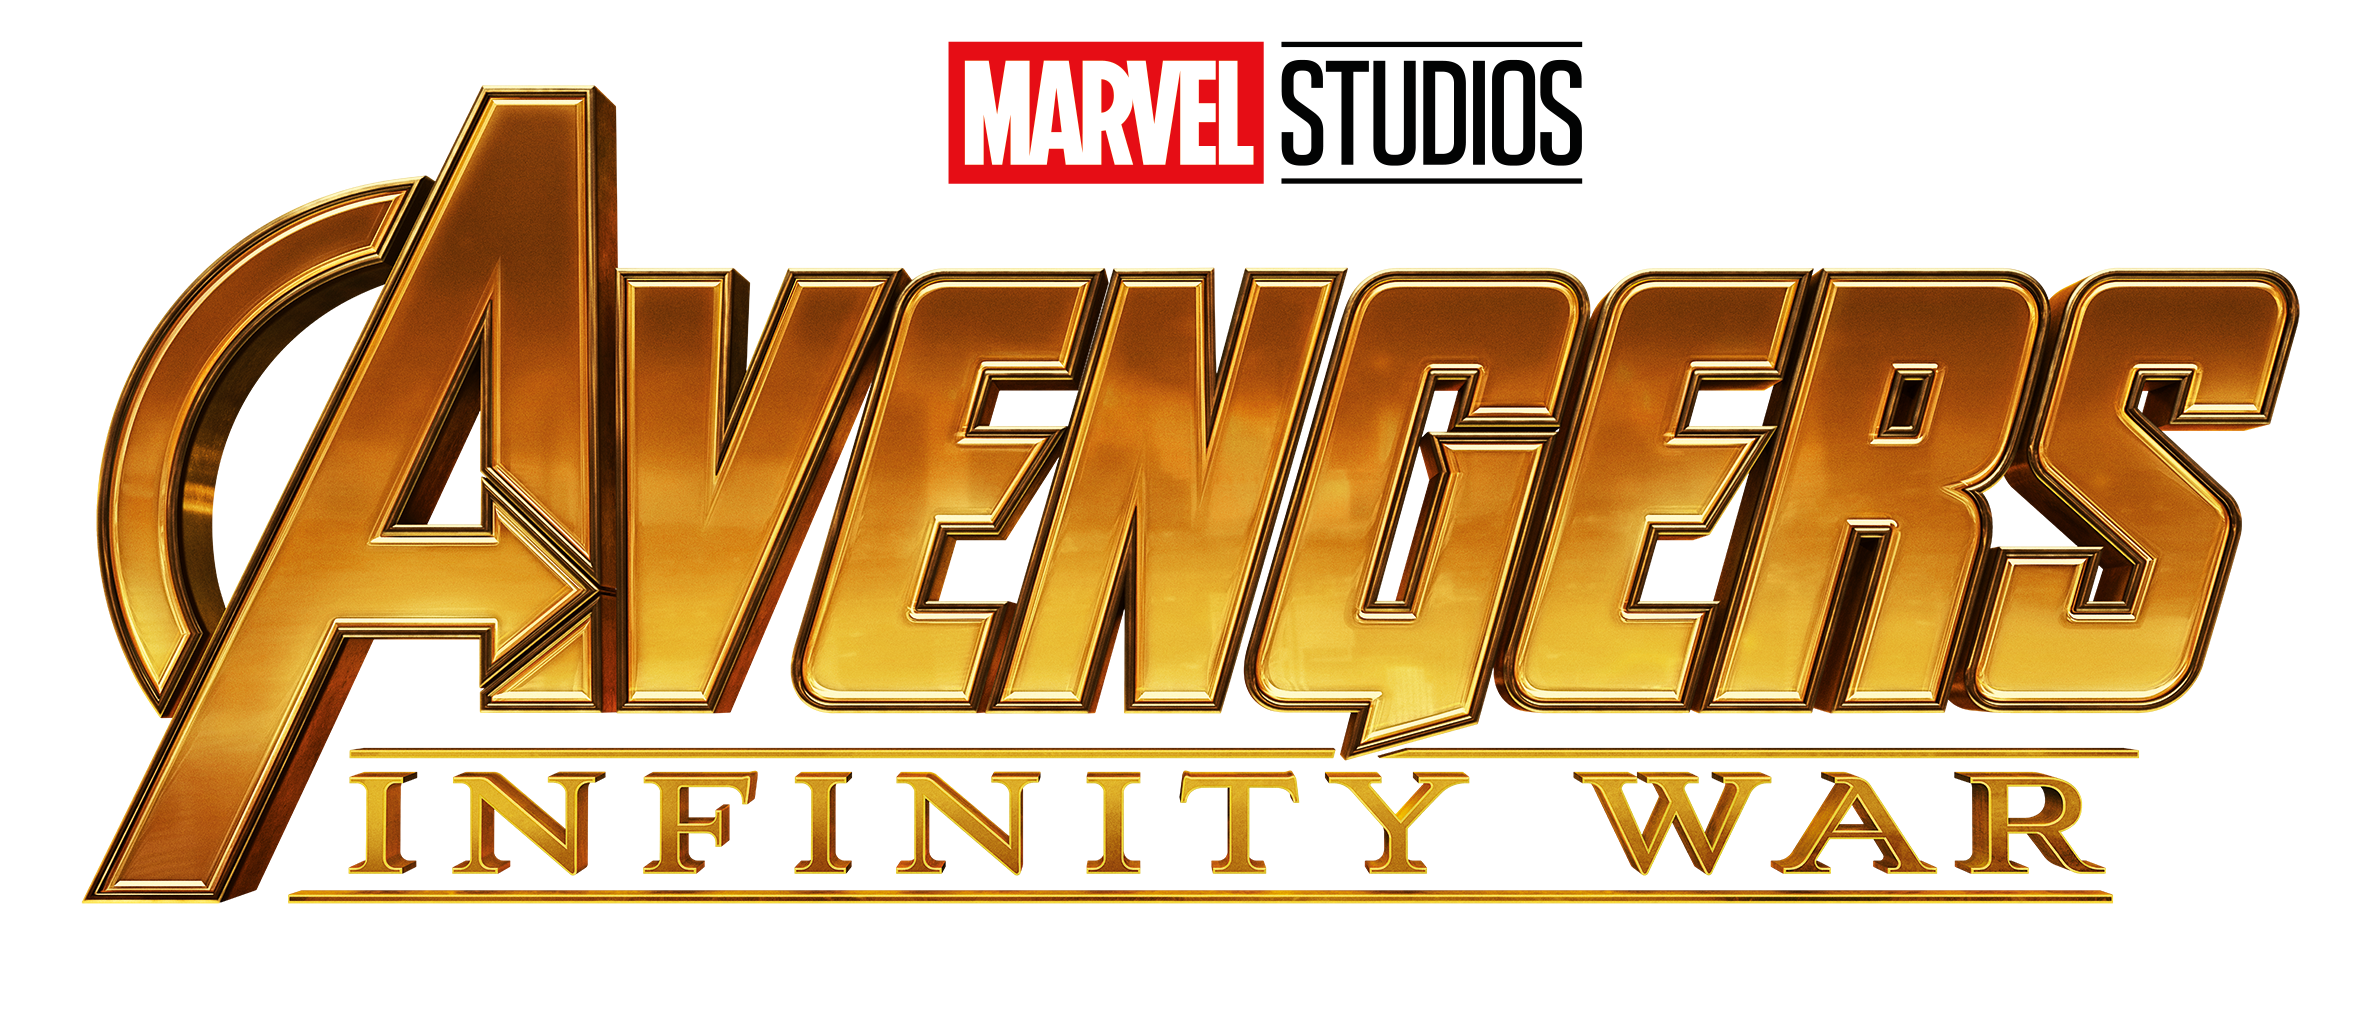 Basketball clipart infinity png library Right now, I got access to the new official Infinity War Logo! Just ... png library